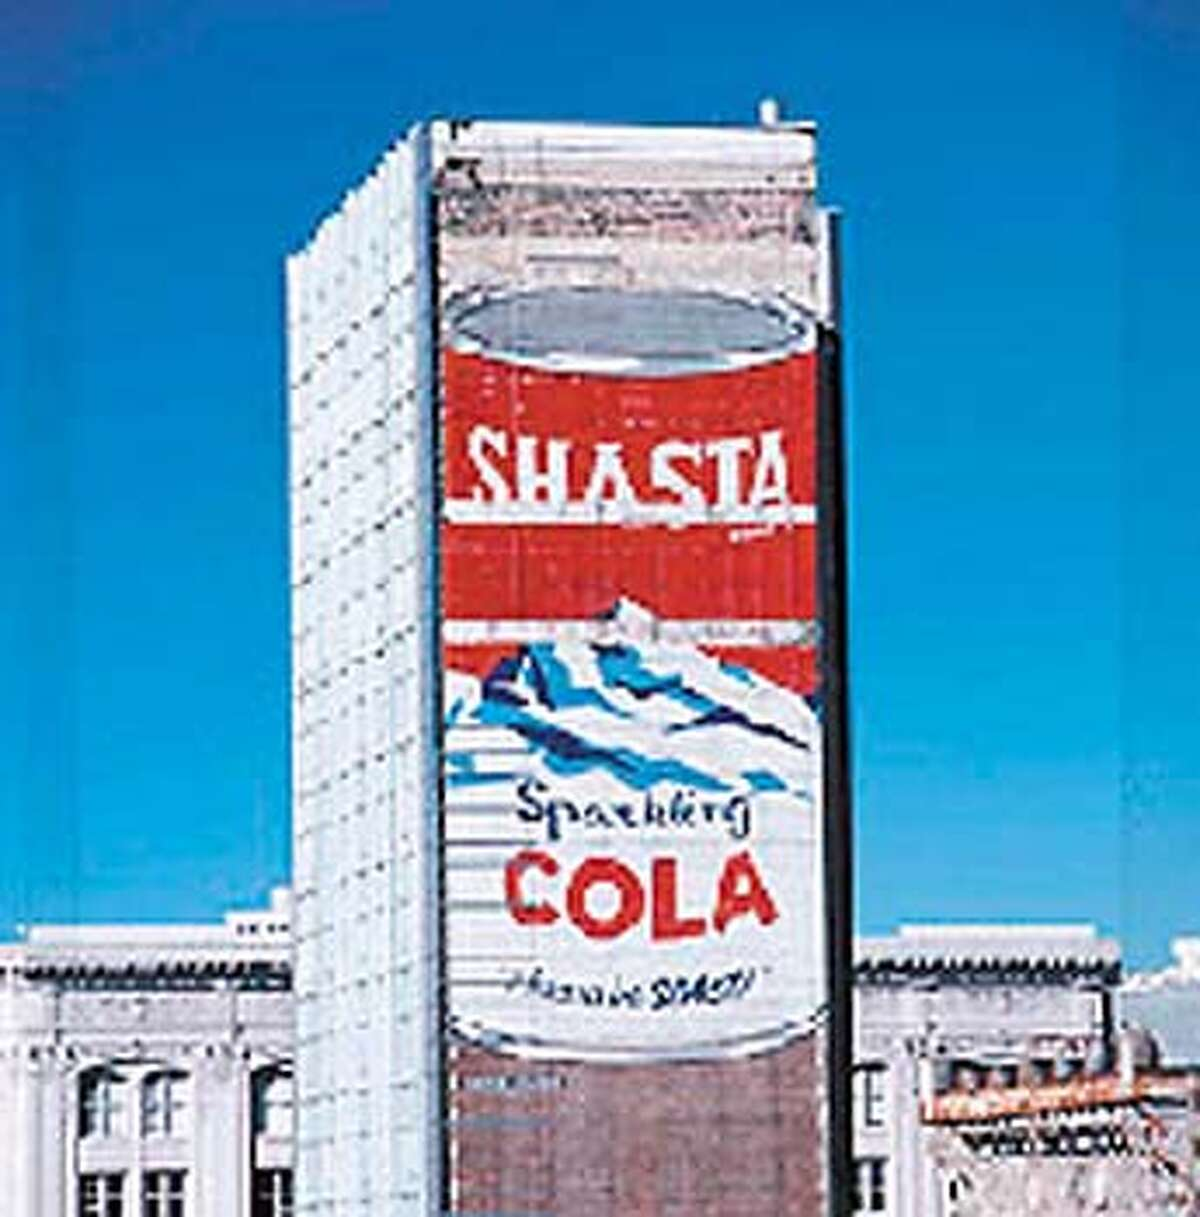 THIS IS A HANDOUT IMAGE. PLEASE VERIFY RIGHTS. shasta cola ad. handout photo.